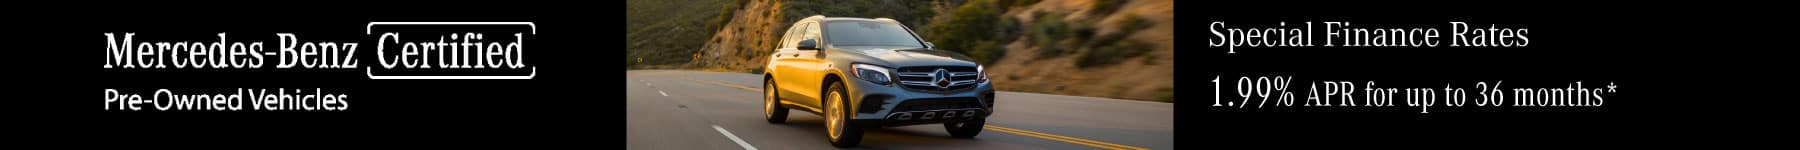 Mercedes-Benz of Chantilly mercedes certified pre owned specials